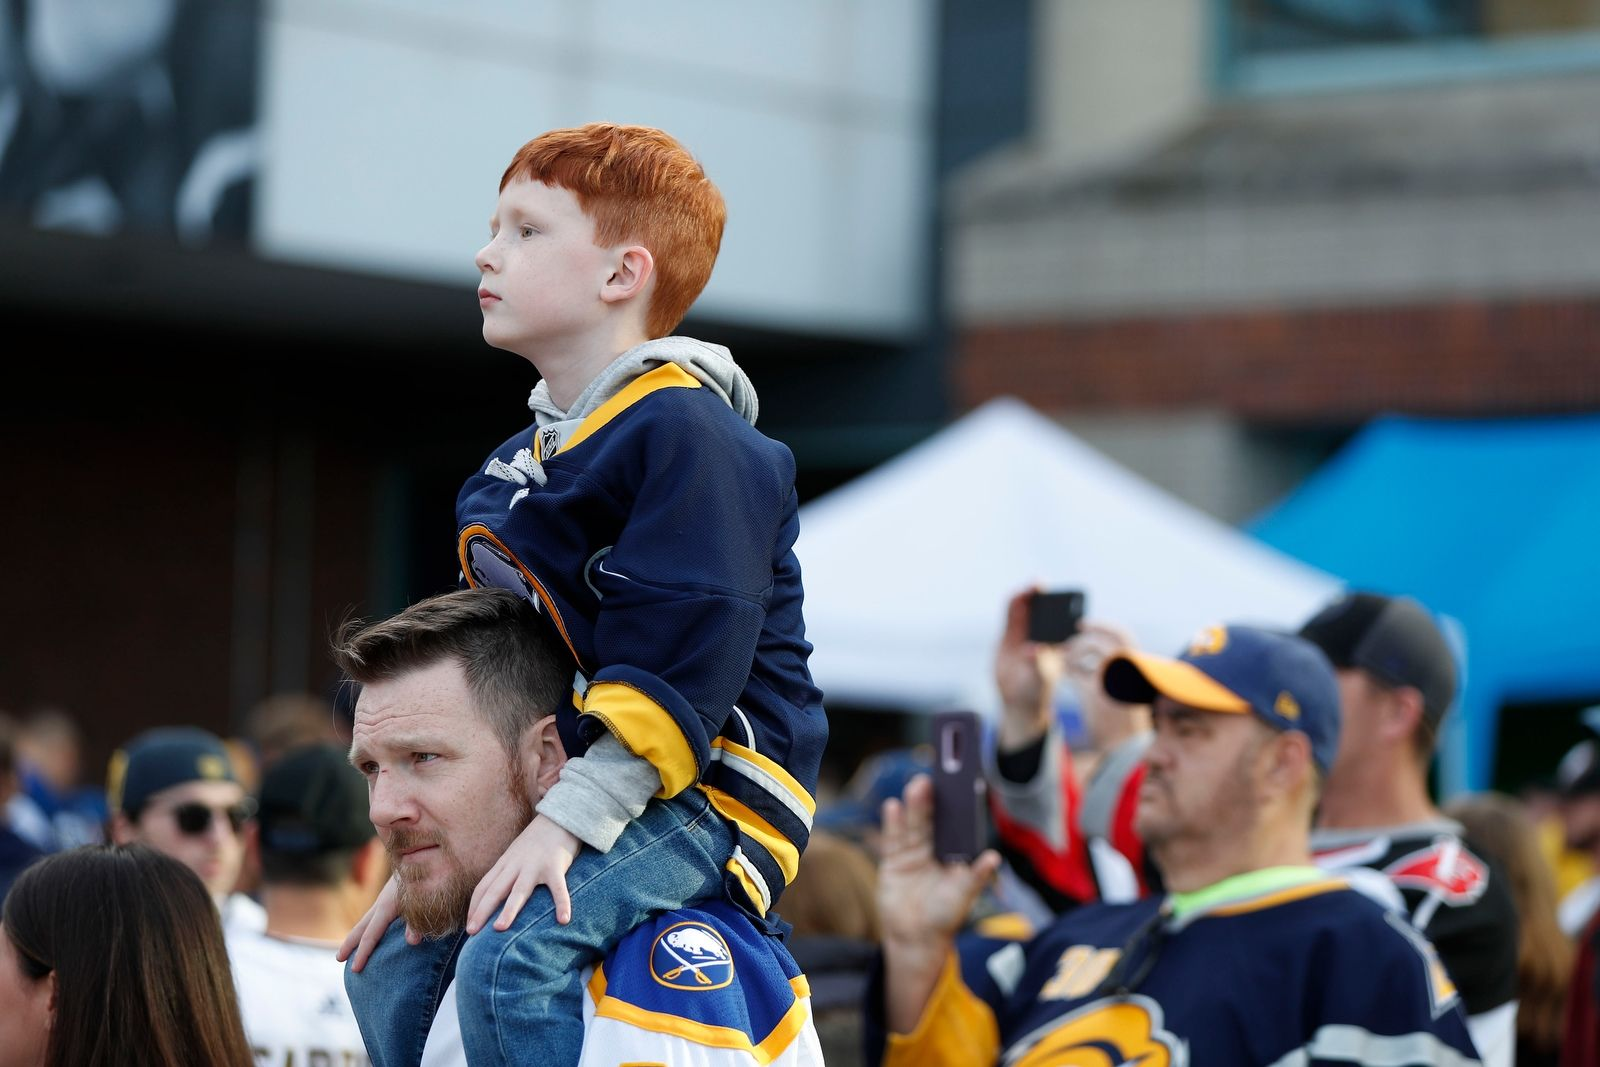 Tom Kanaley gives his son Thomas Kanaley a better view before the Buffalo Sabres Alumni Captains arrive on the Blue and Gold carpet for the season home opener at KeyBank Center in Buffalo Saturday, Oct. 5, 2019.